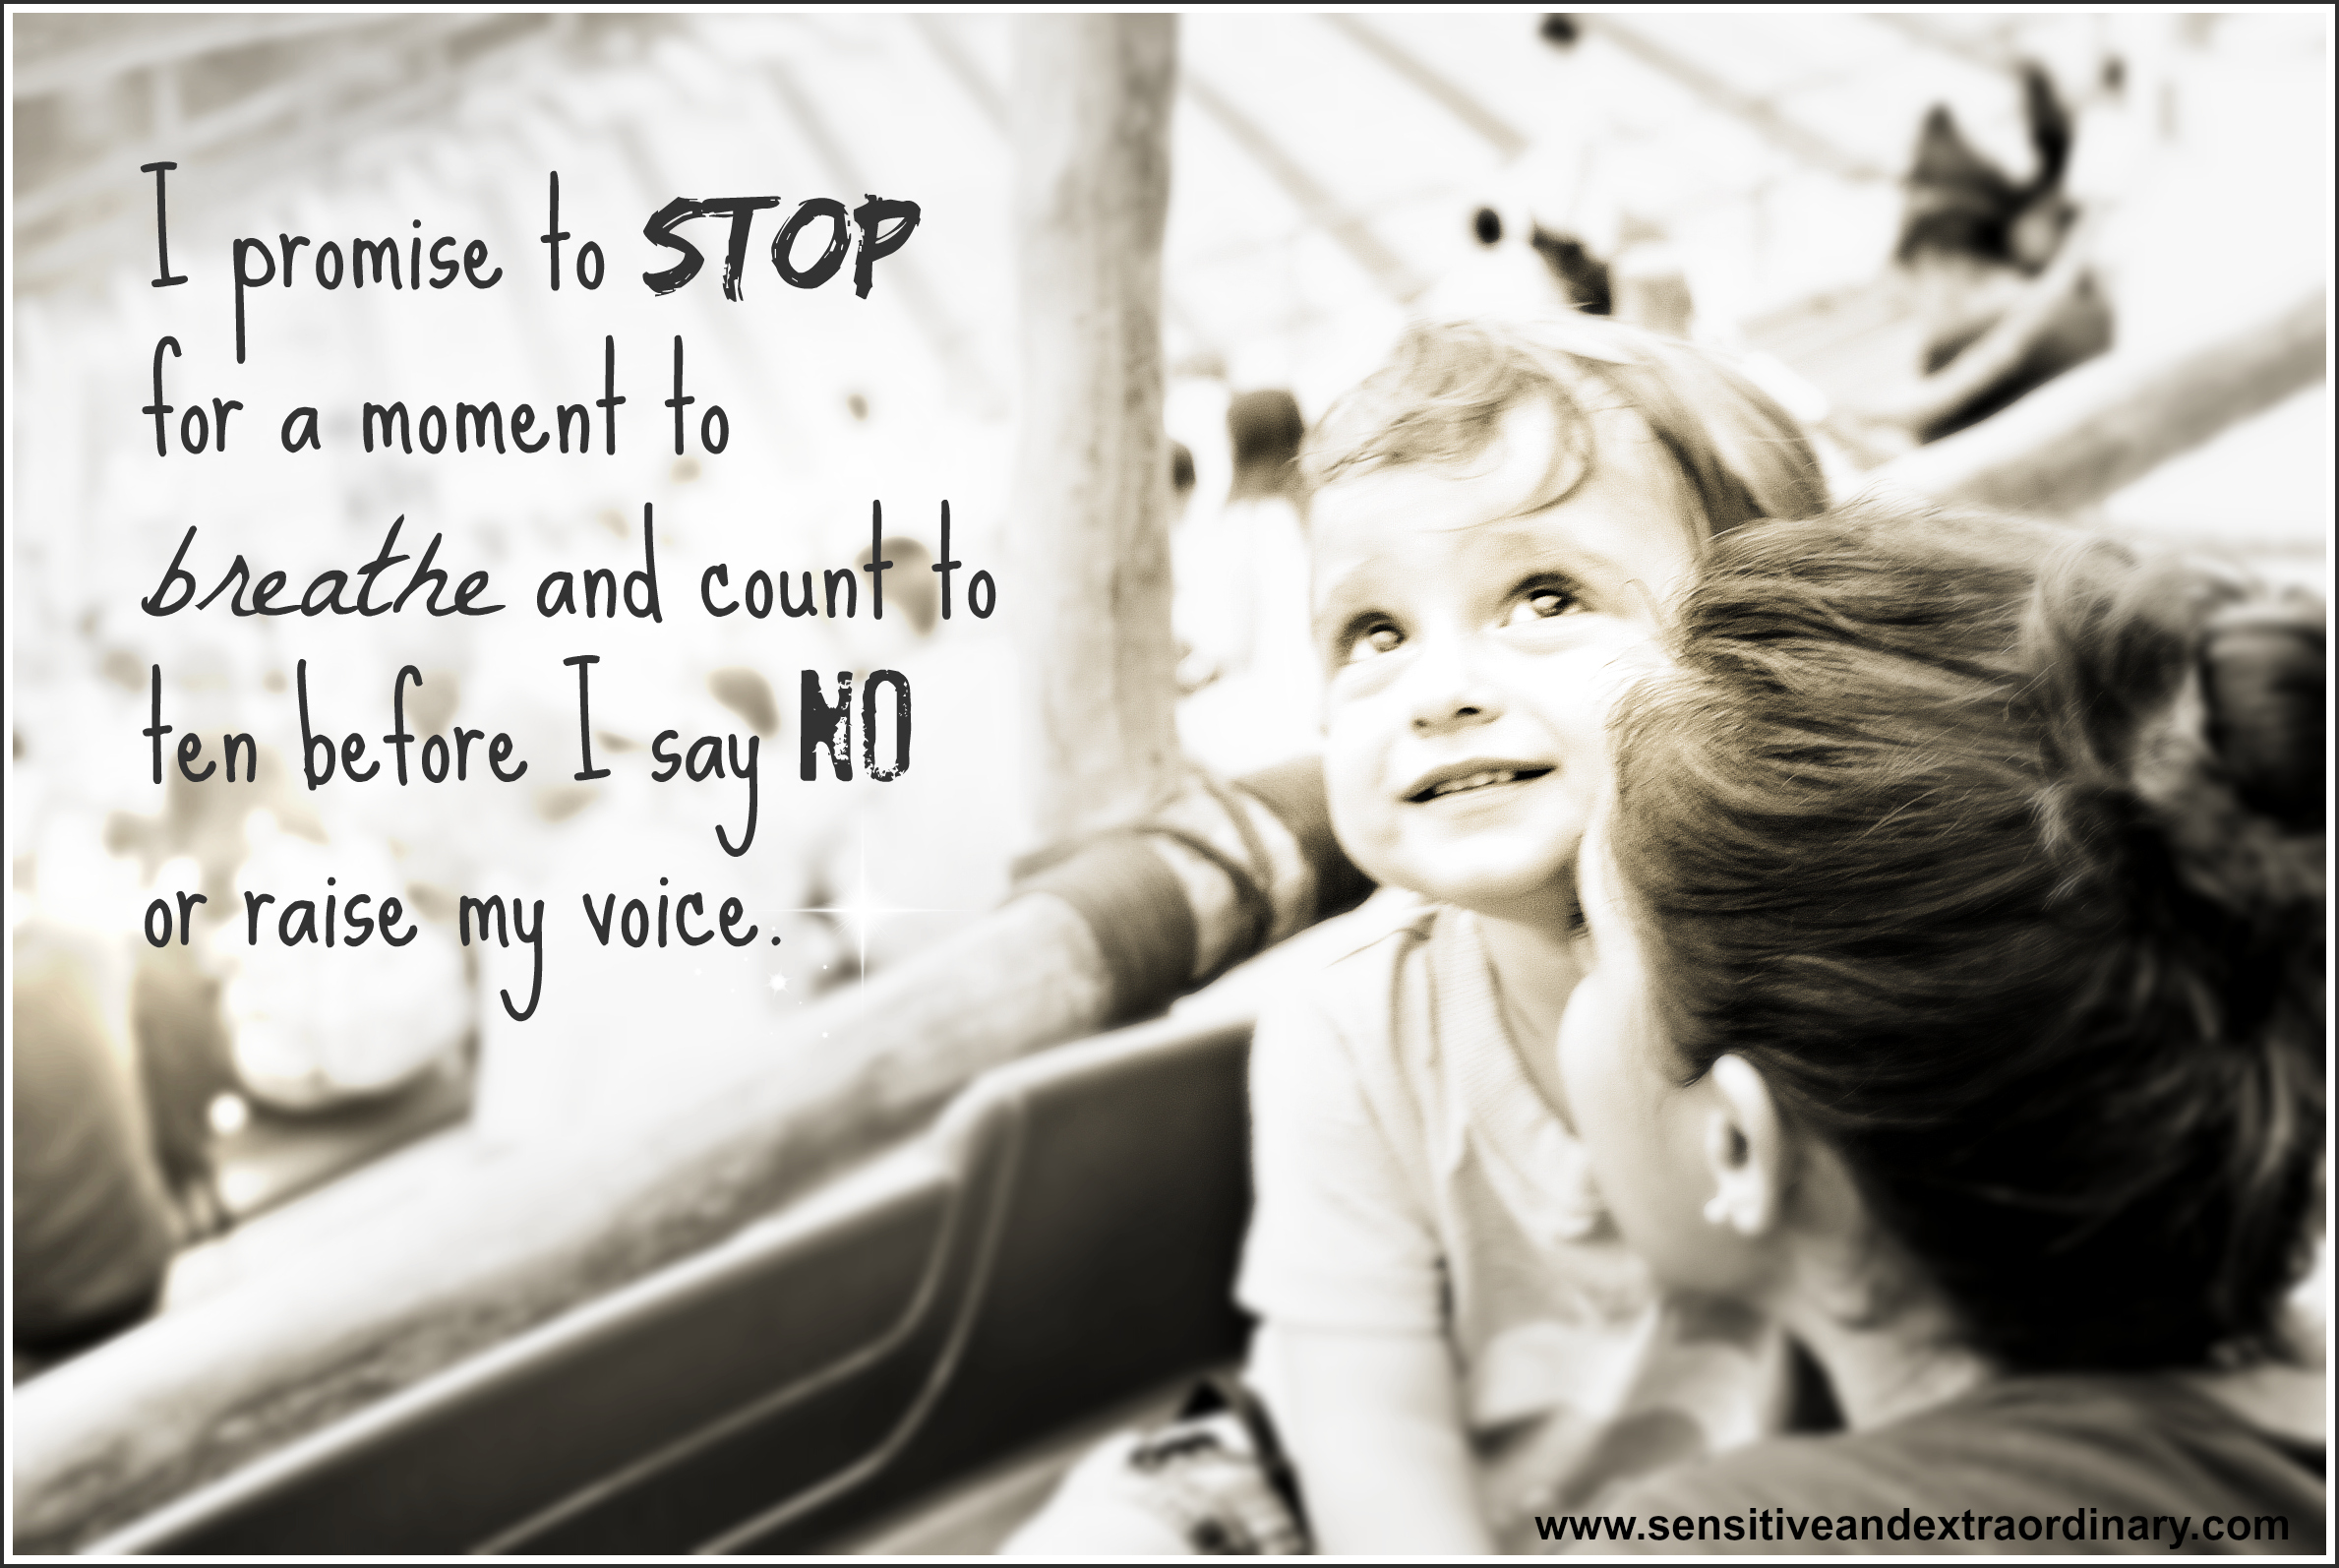 I promise to stop for a moment to either breathe or count to ten before I say no or raise my voice mean mommy